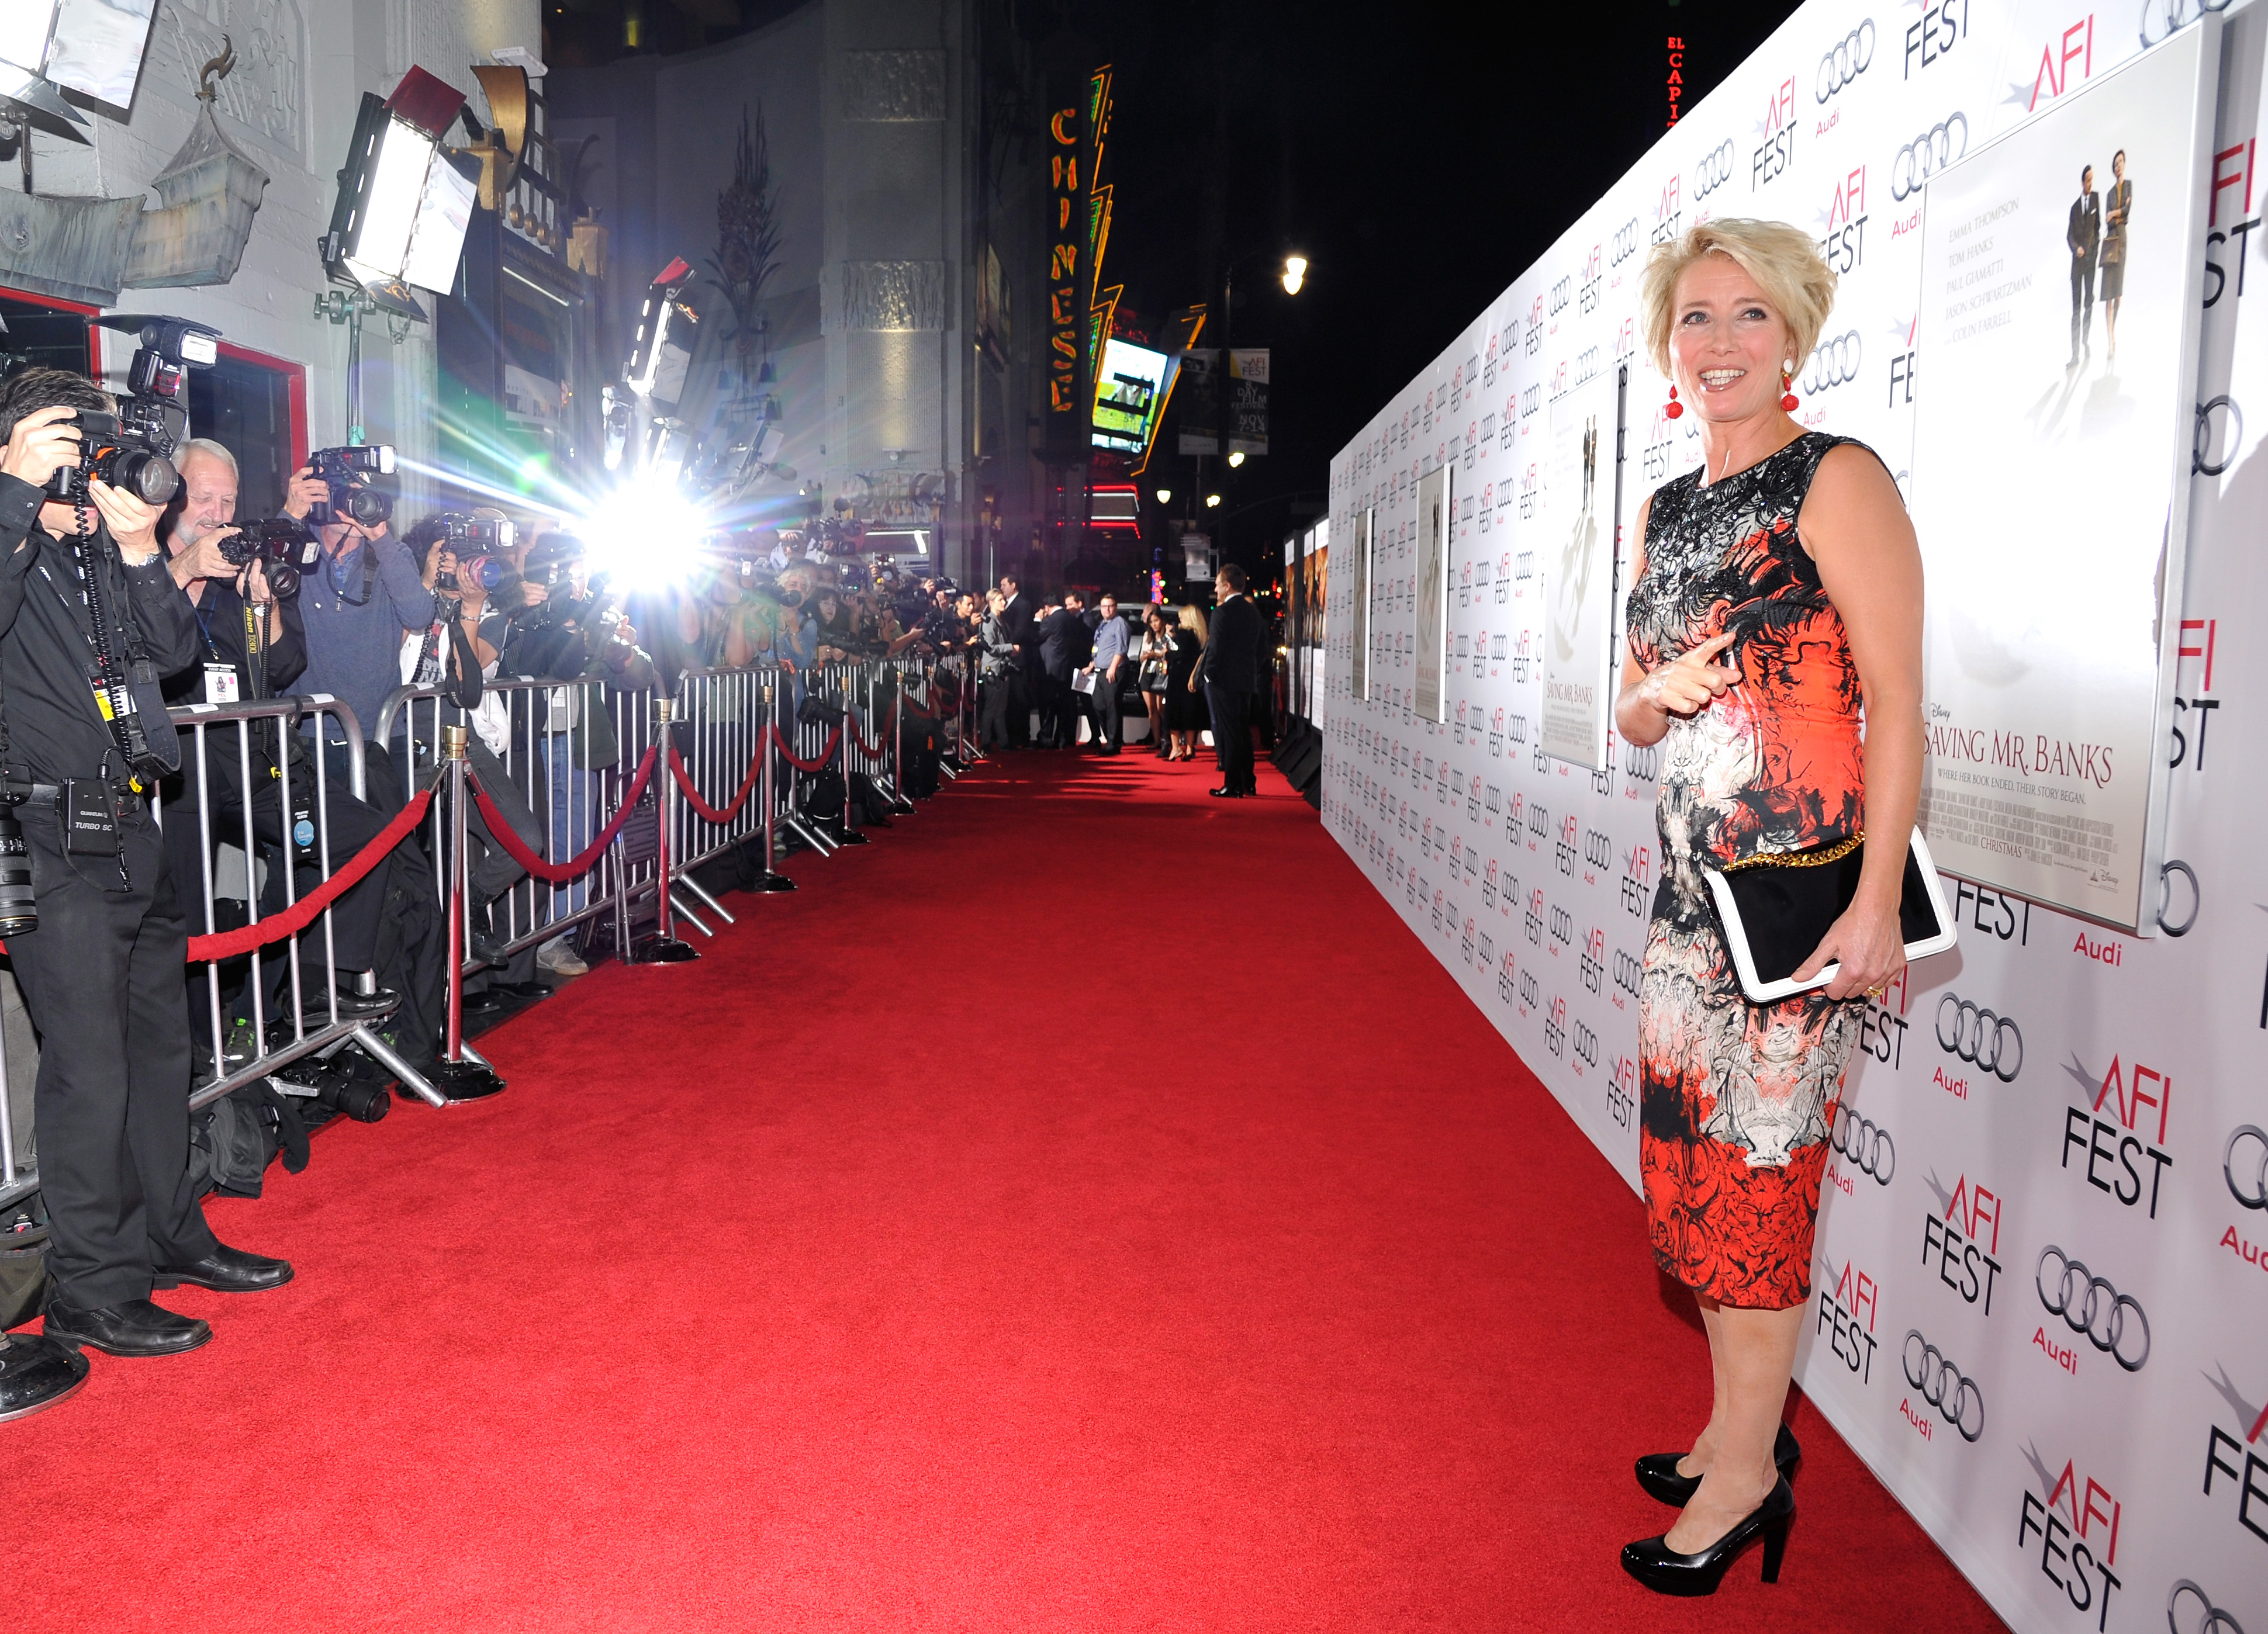 Hollywood red carpet - photo#1